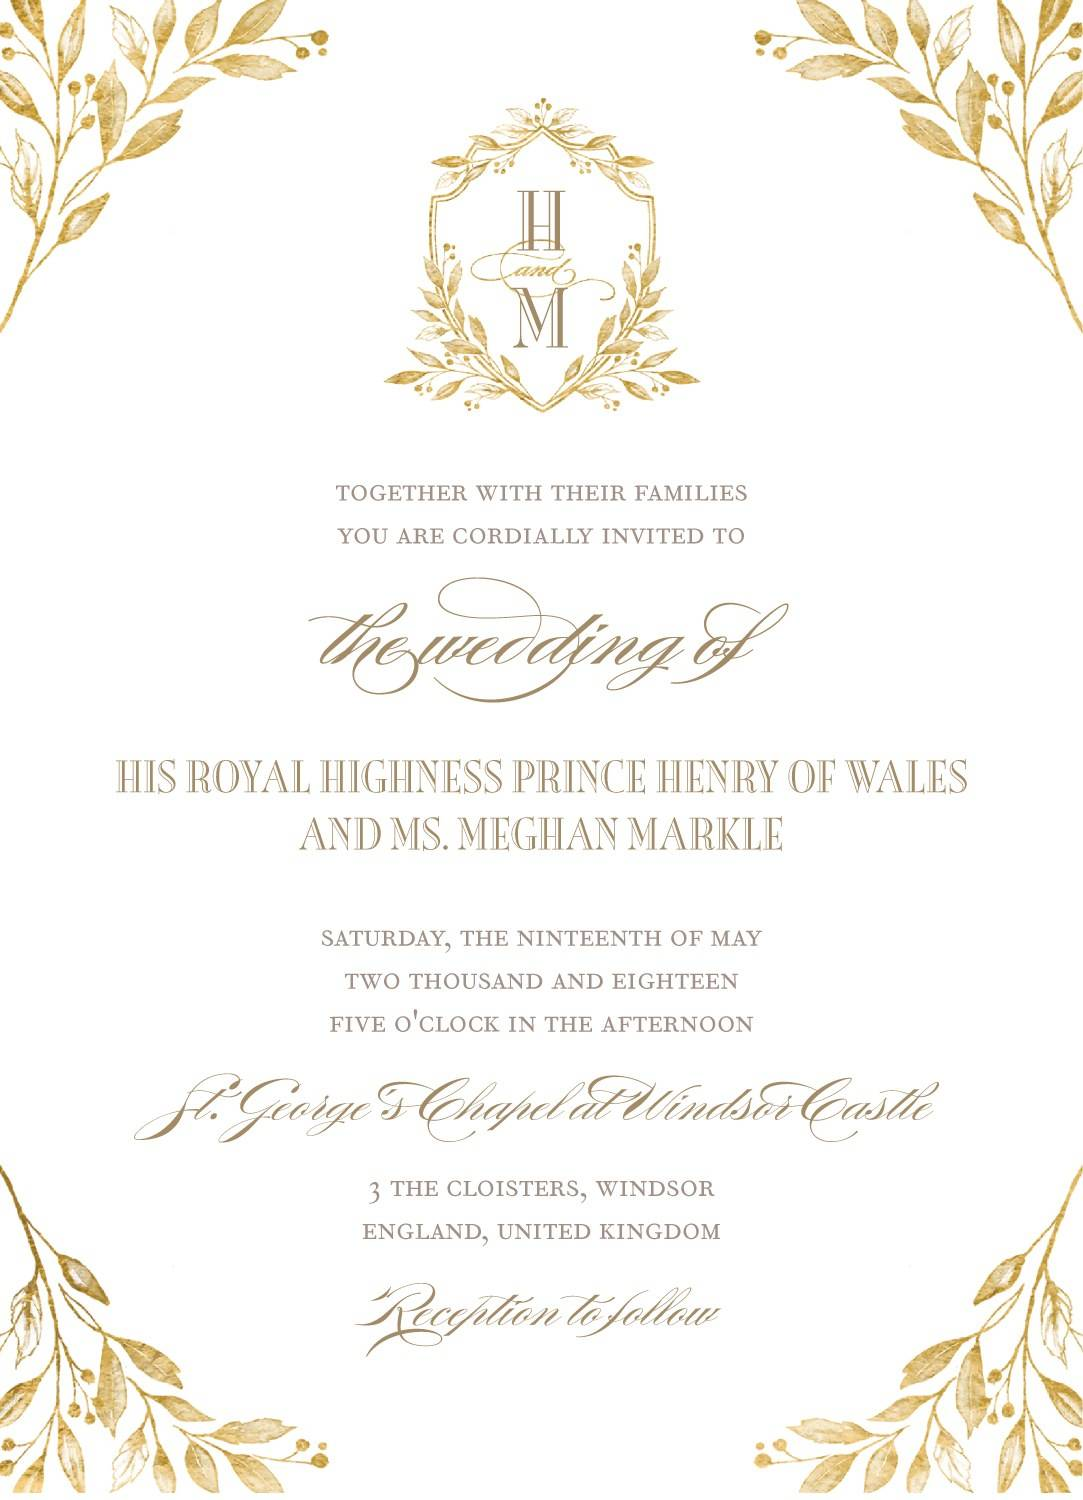 Prince Harry Royal Wedding Invitation Template